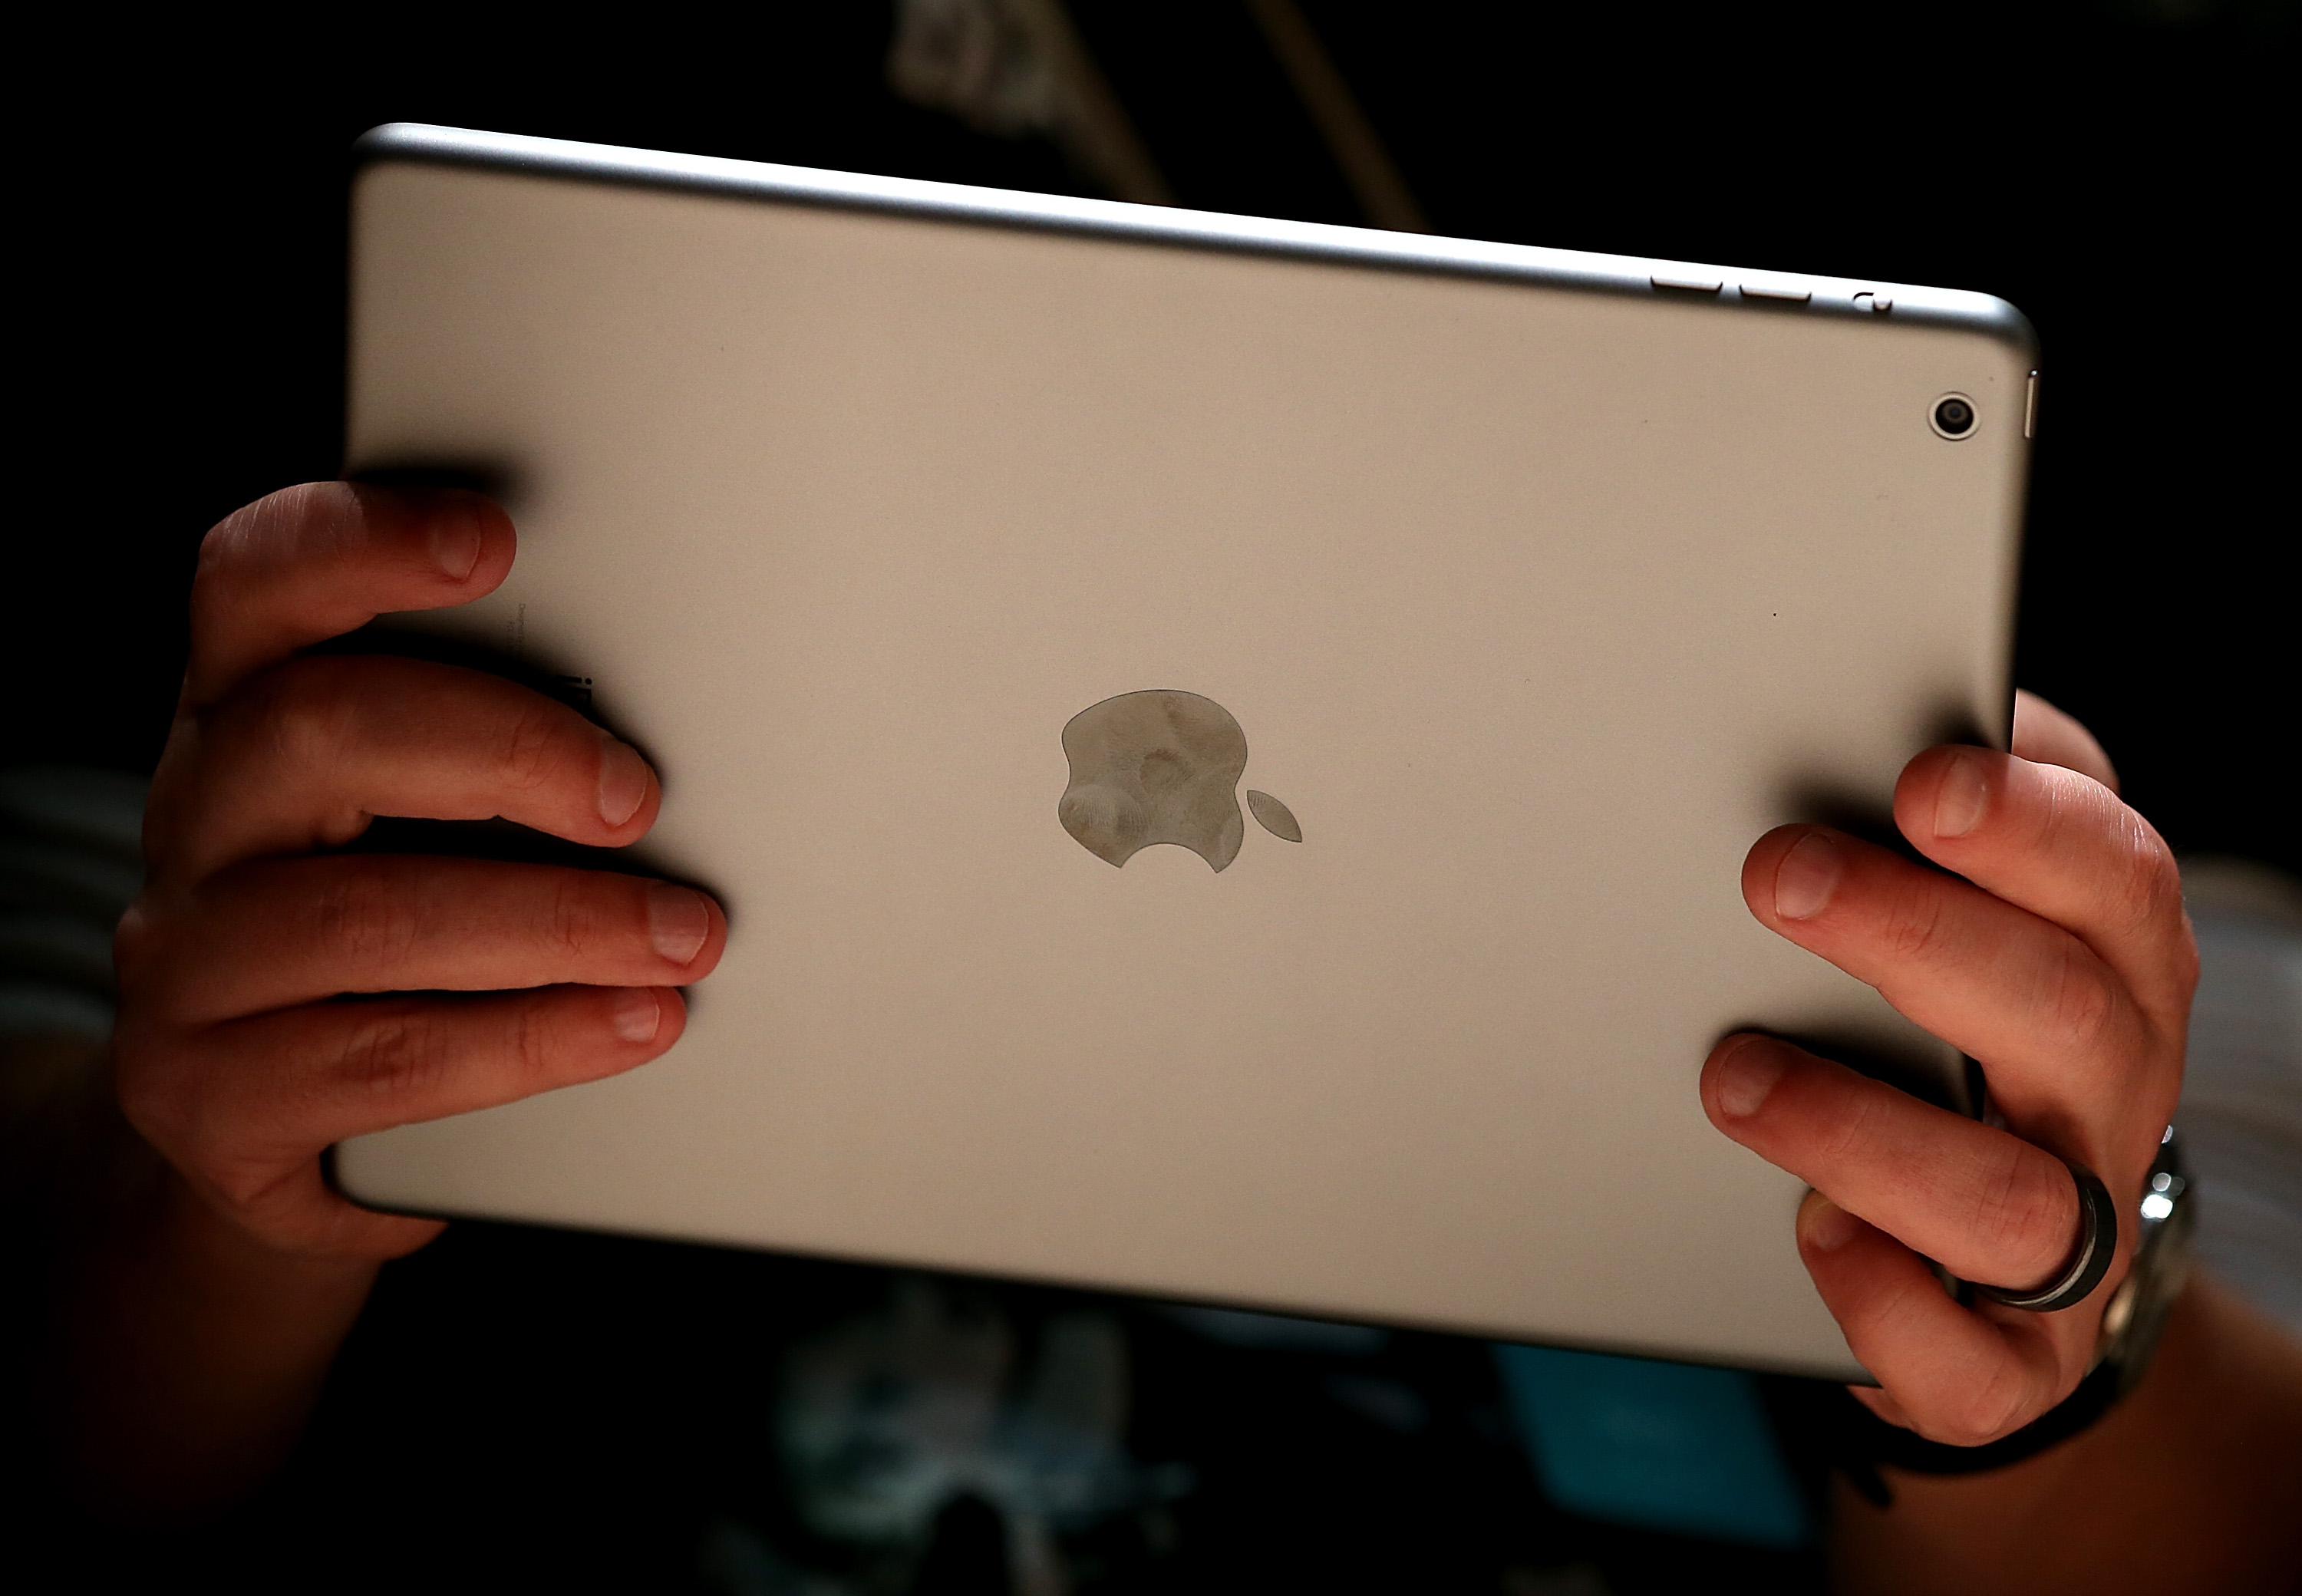 An attendee looks at the new iPad Air during an Apple announcement at the Yerba Buena Center for the Arts on October 22, 2013 in San Francisco, California.